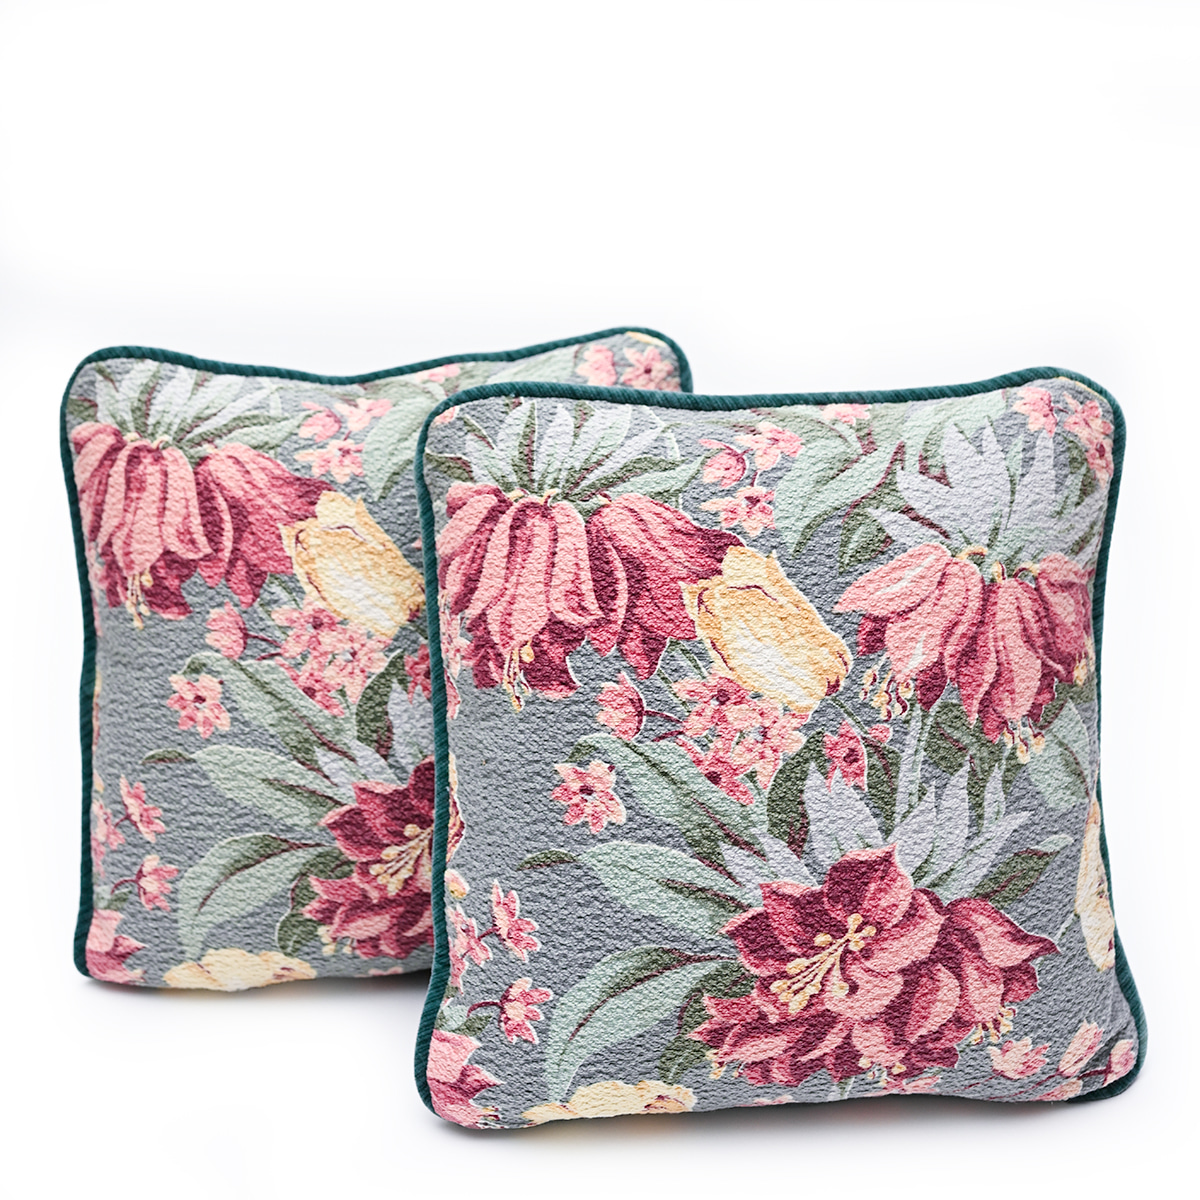 Barkcloth Pillow Pair – Floral on seafoam